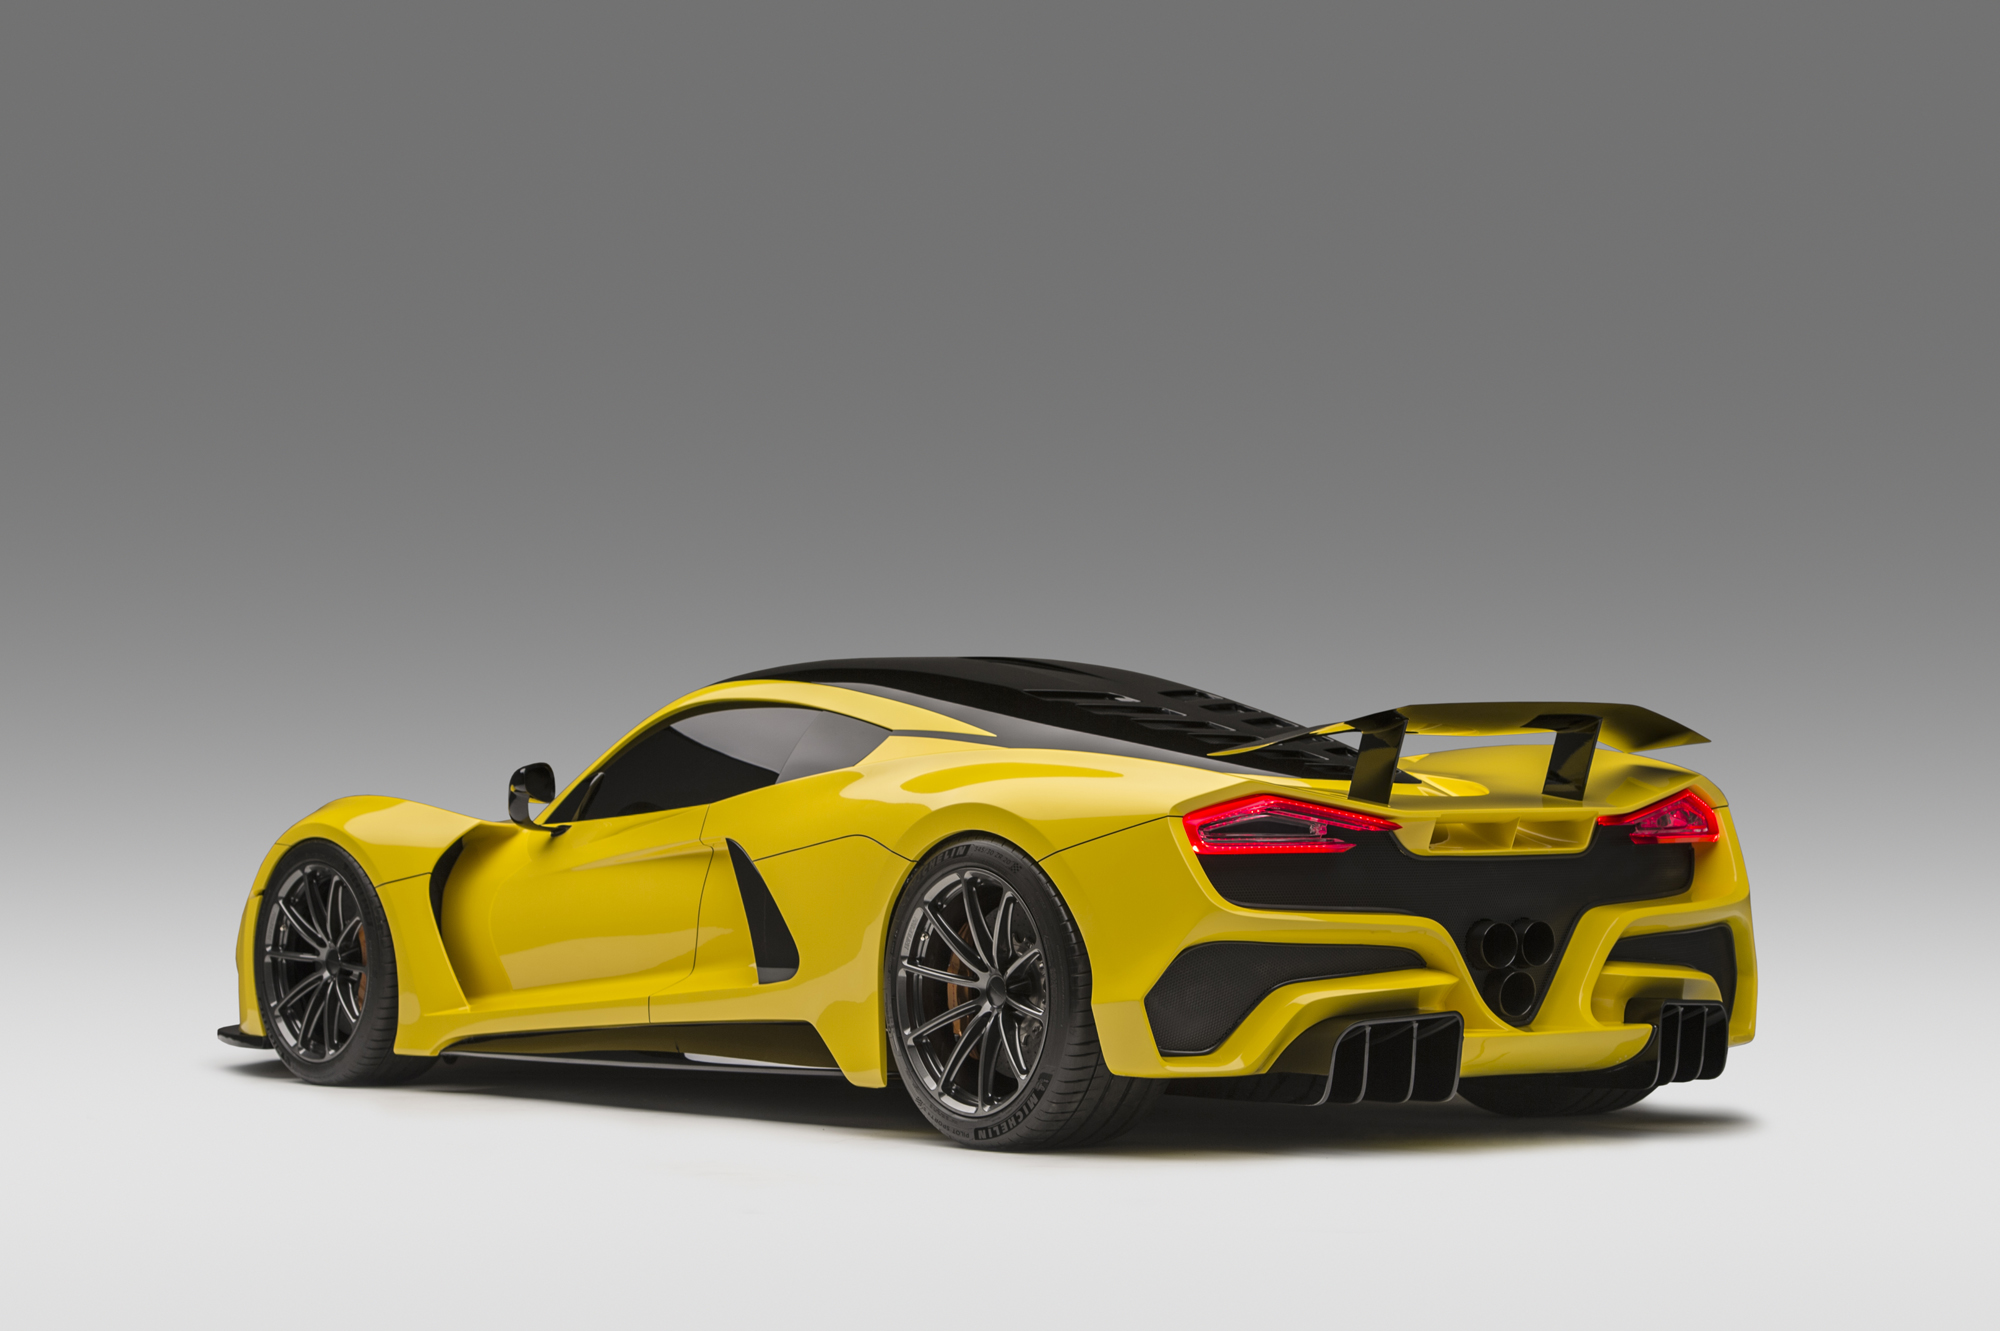 The Official Website Of Hennessey Venom Gt Business Industrial Electrical Test Equipment Motors F5 02